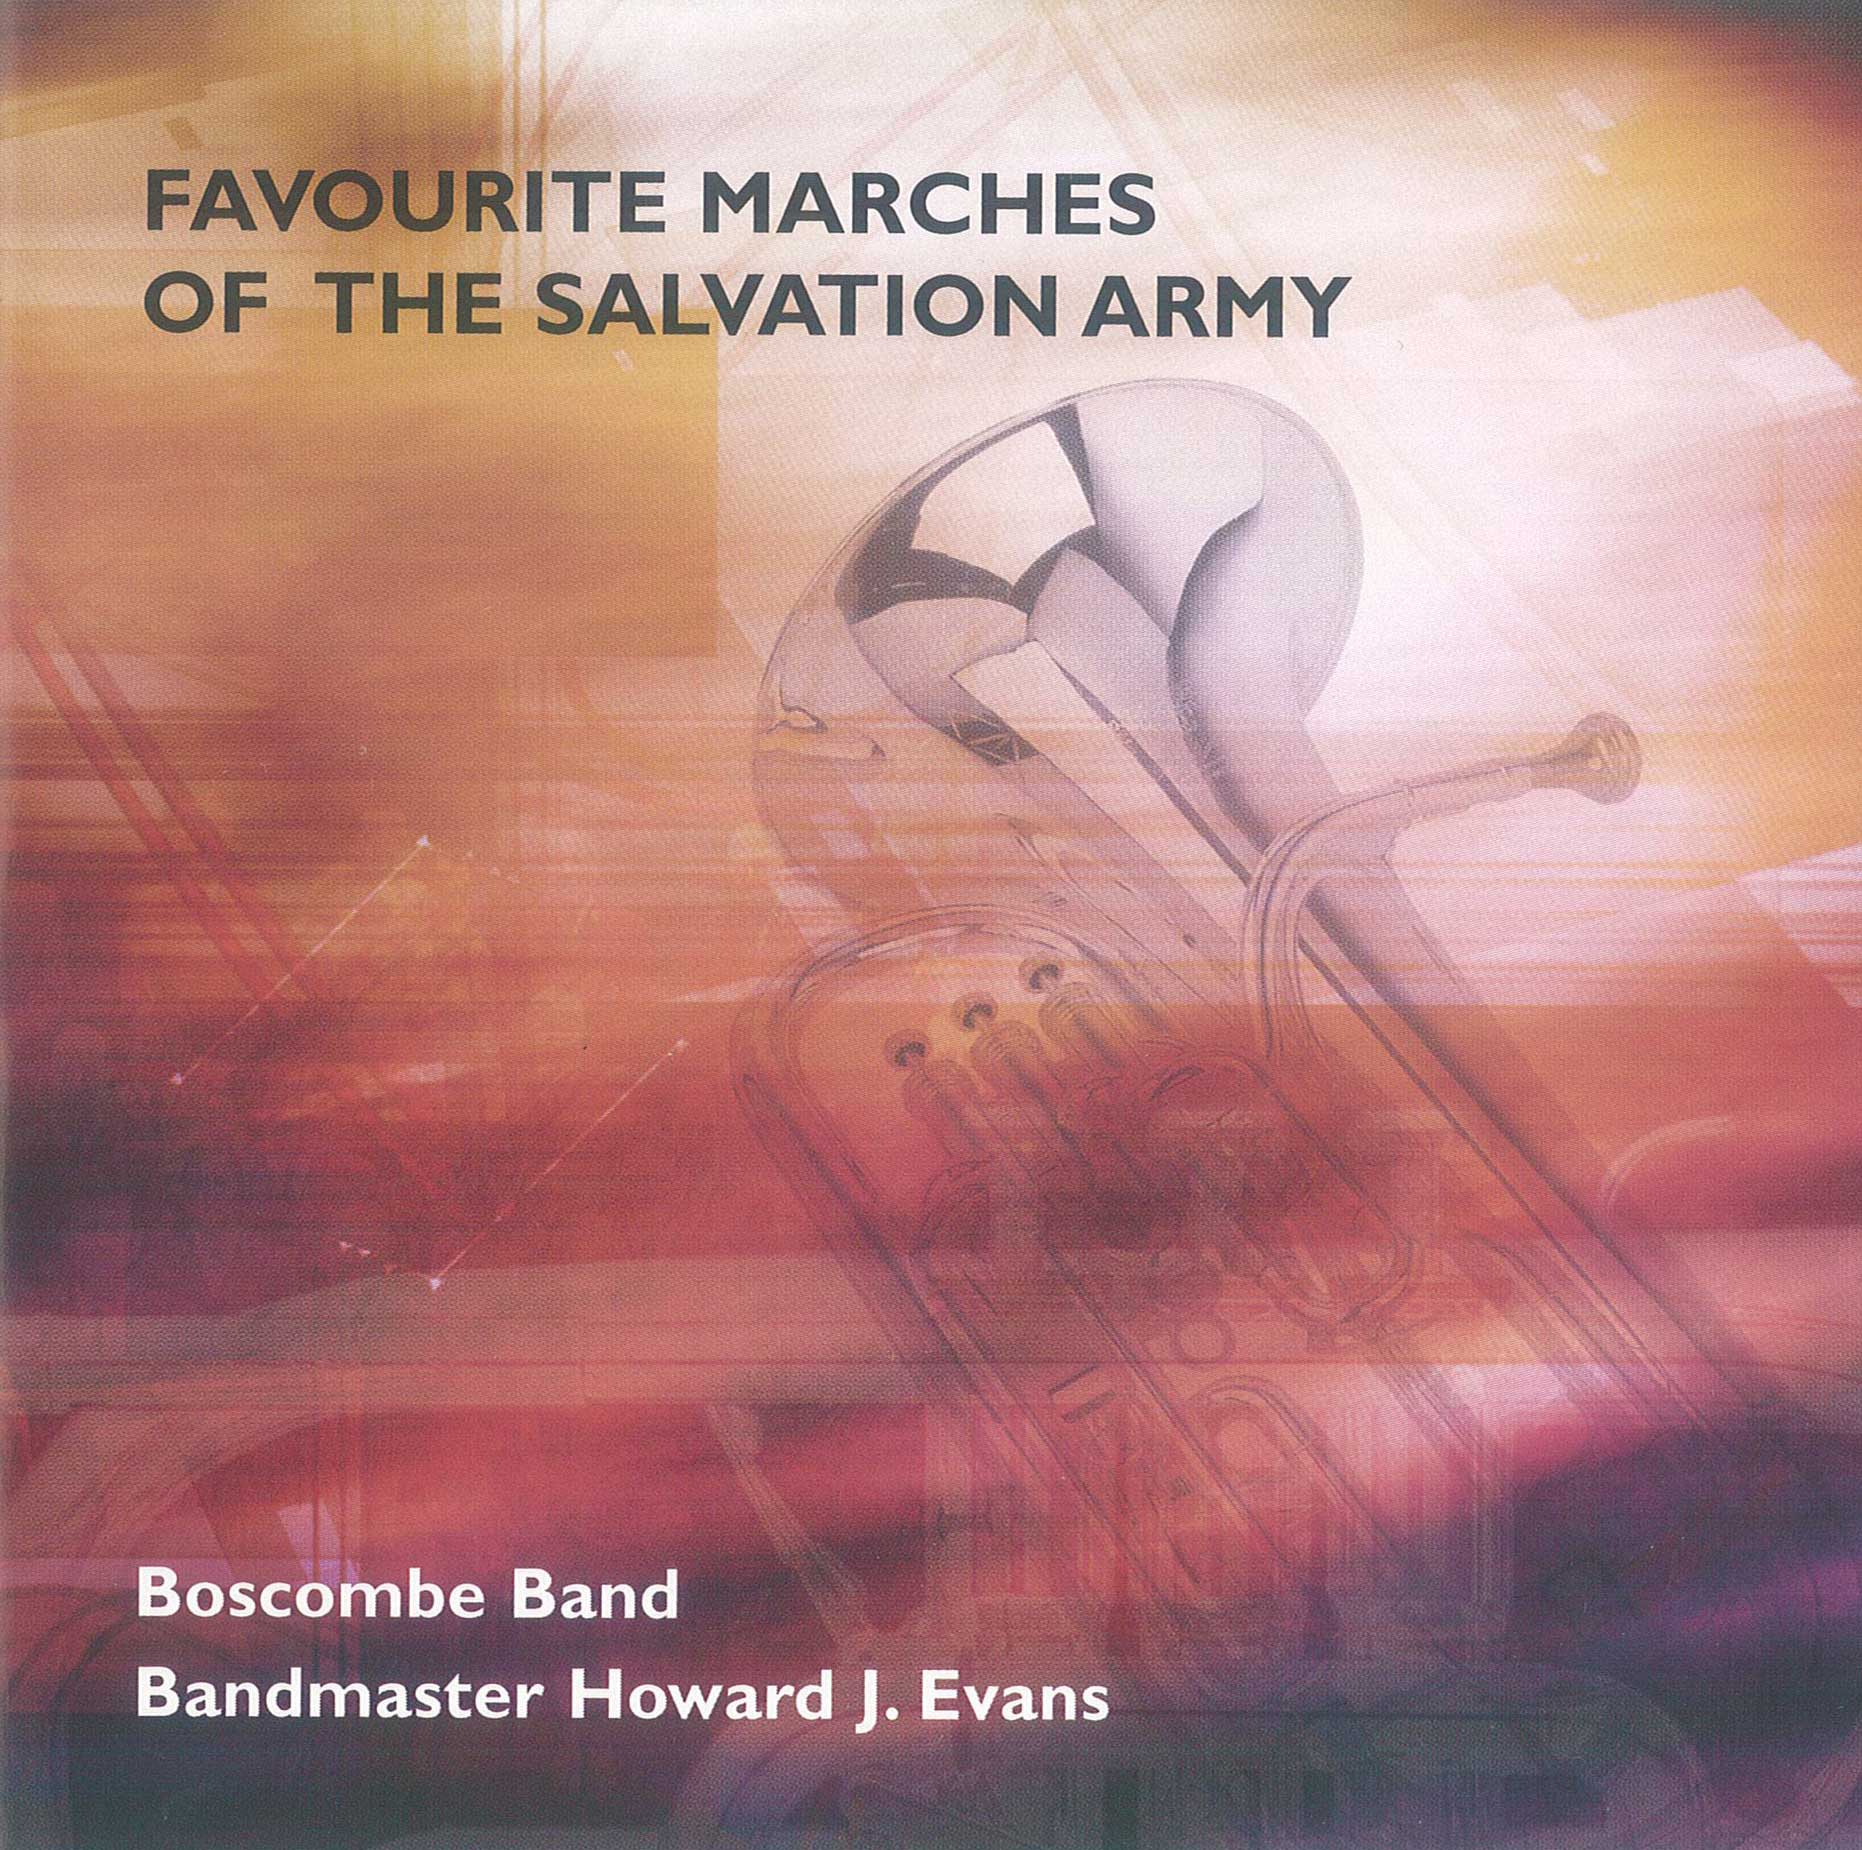 Favourite Marches of the Salvation Army - Download